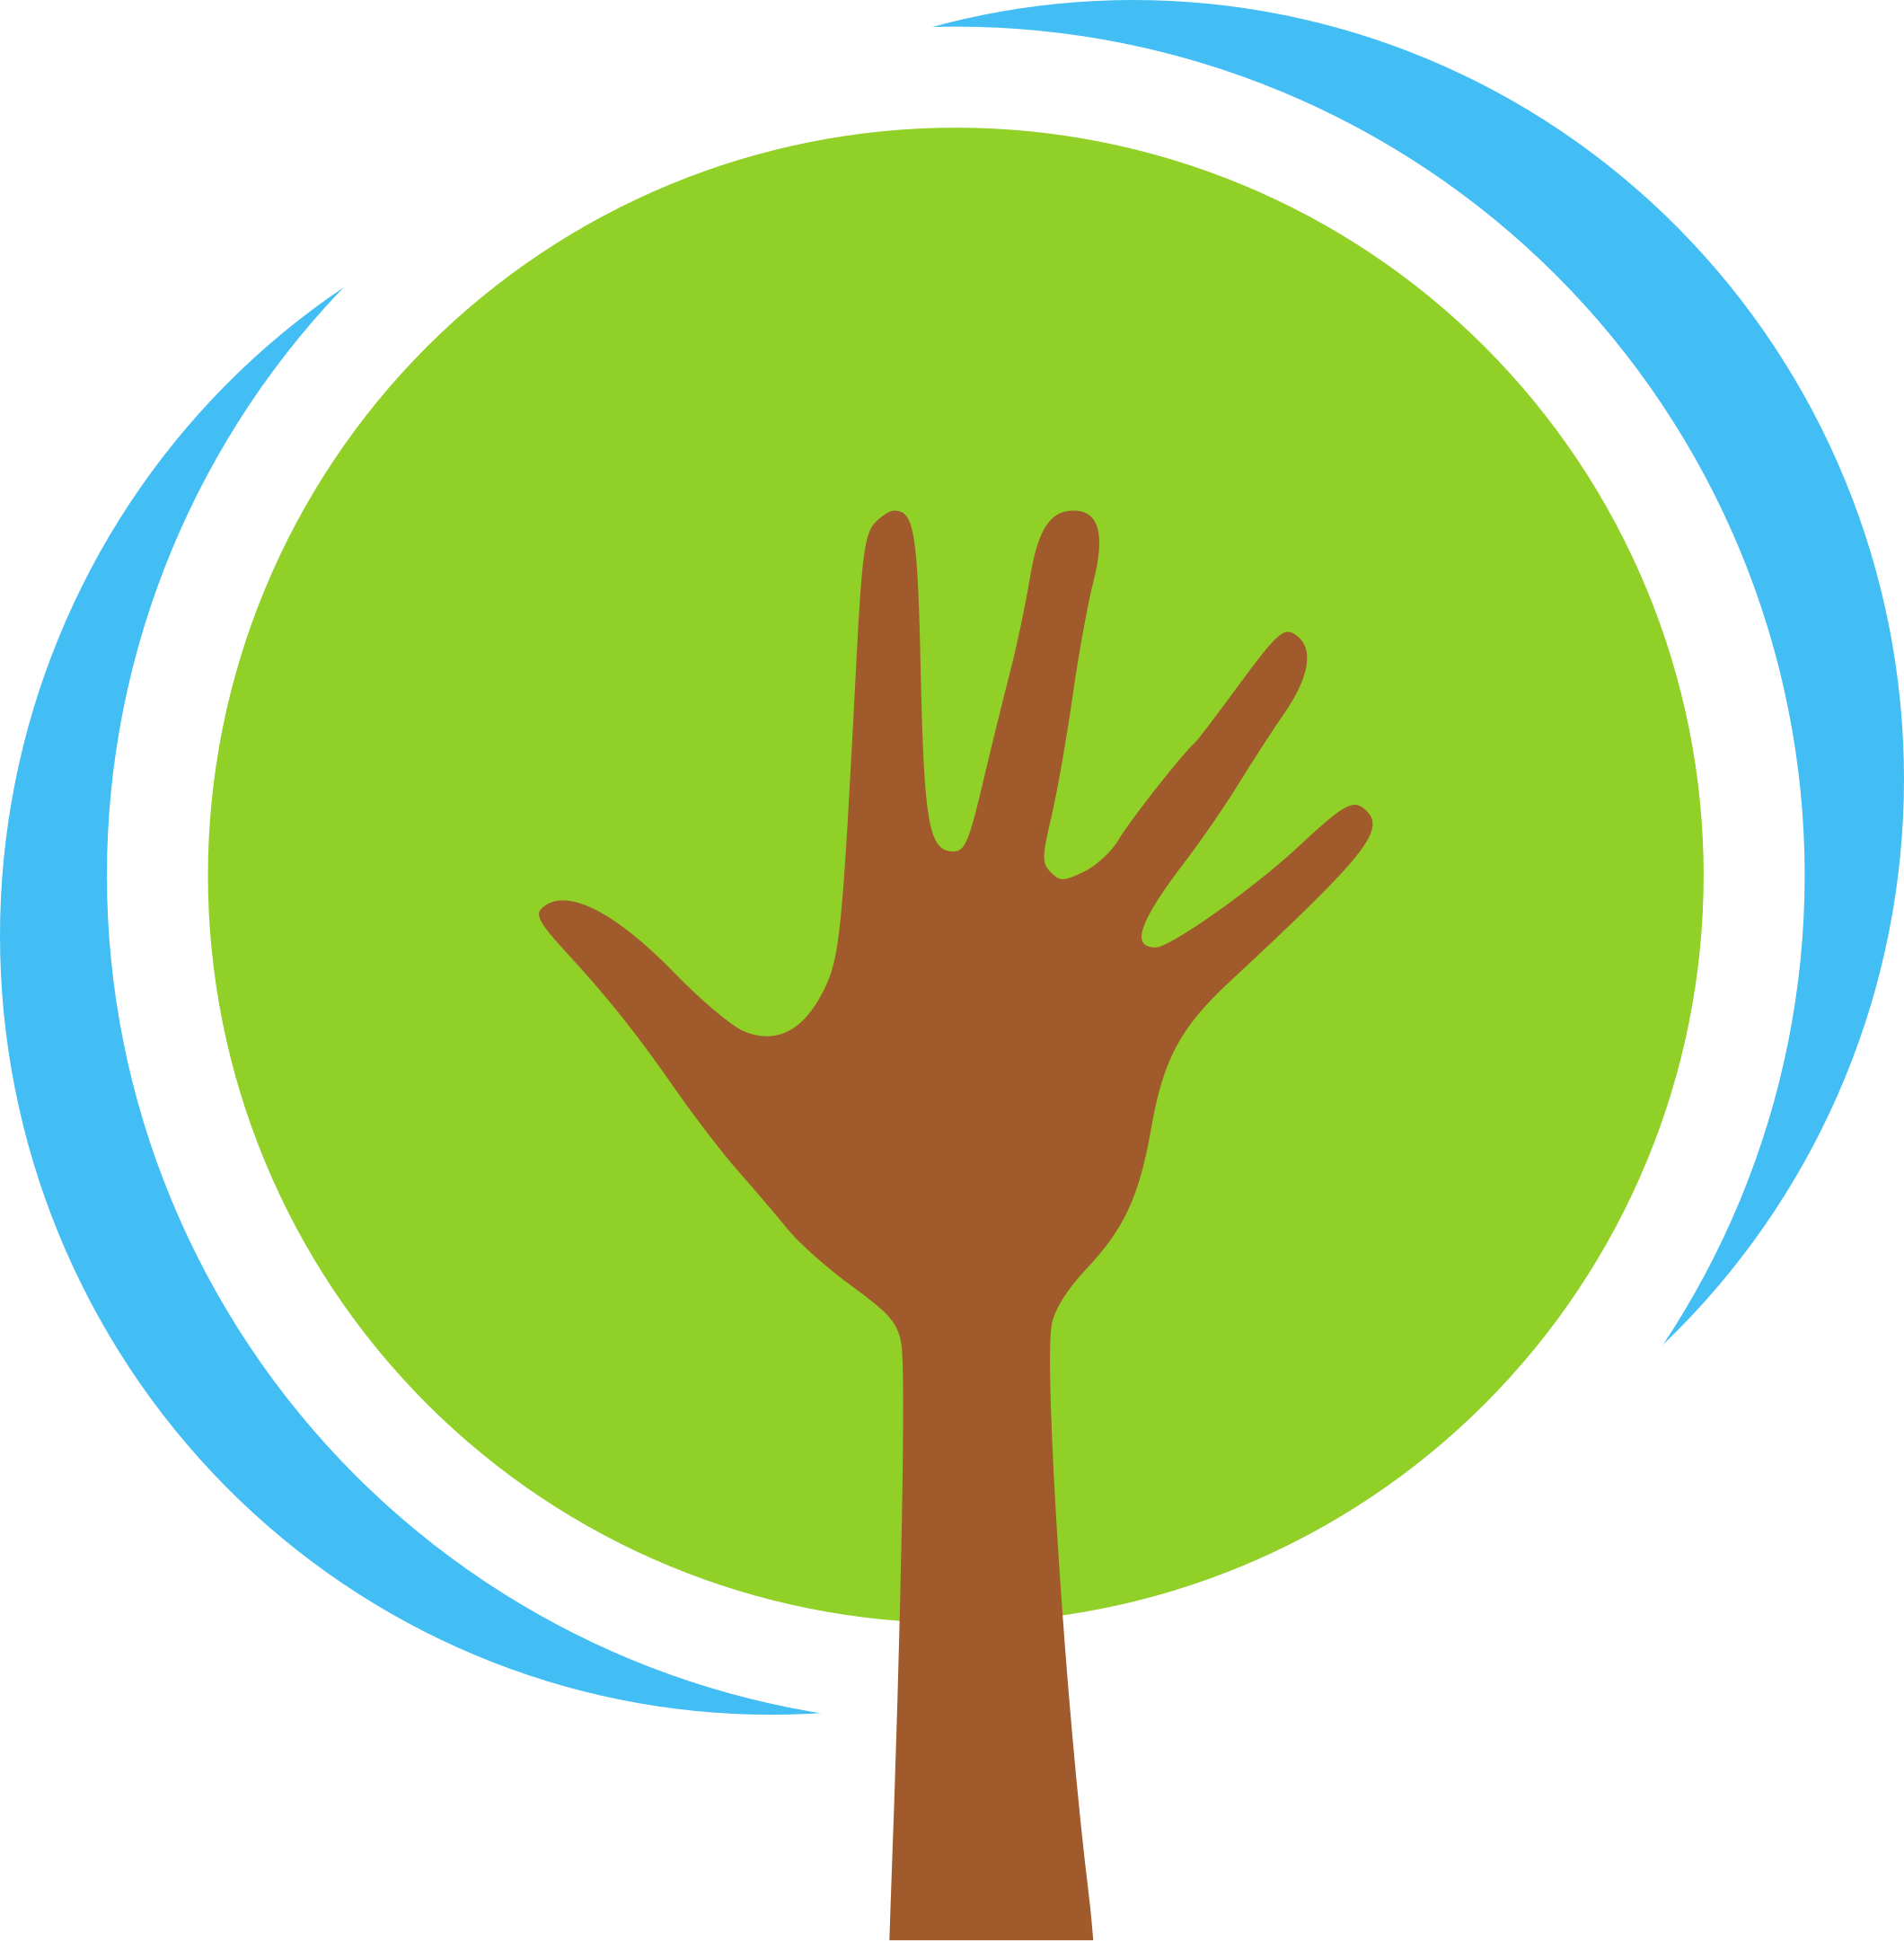 Environment clipart clean community. Branch out make waves